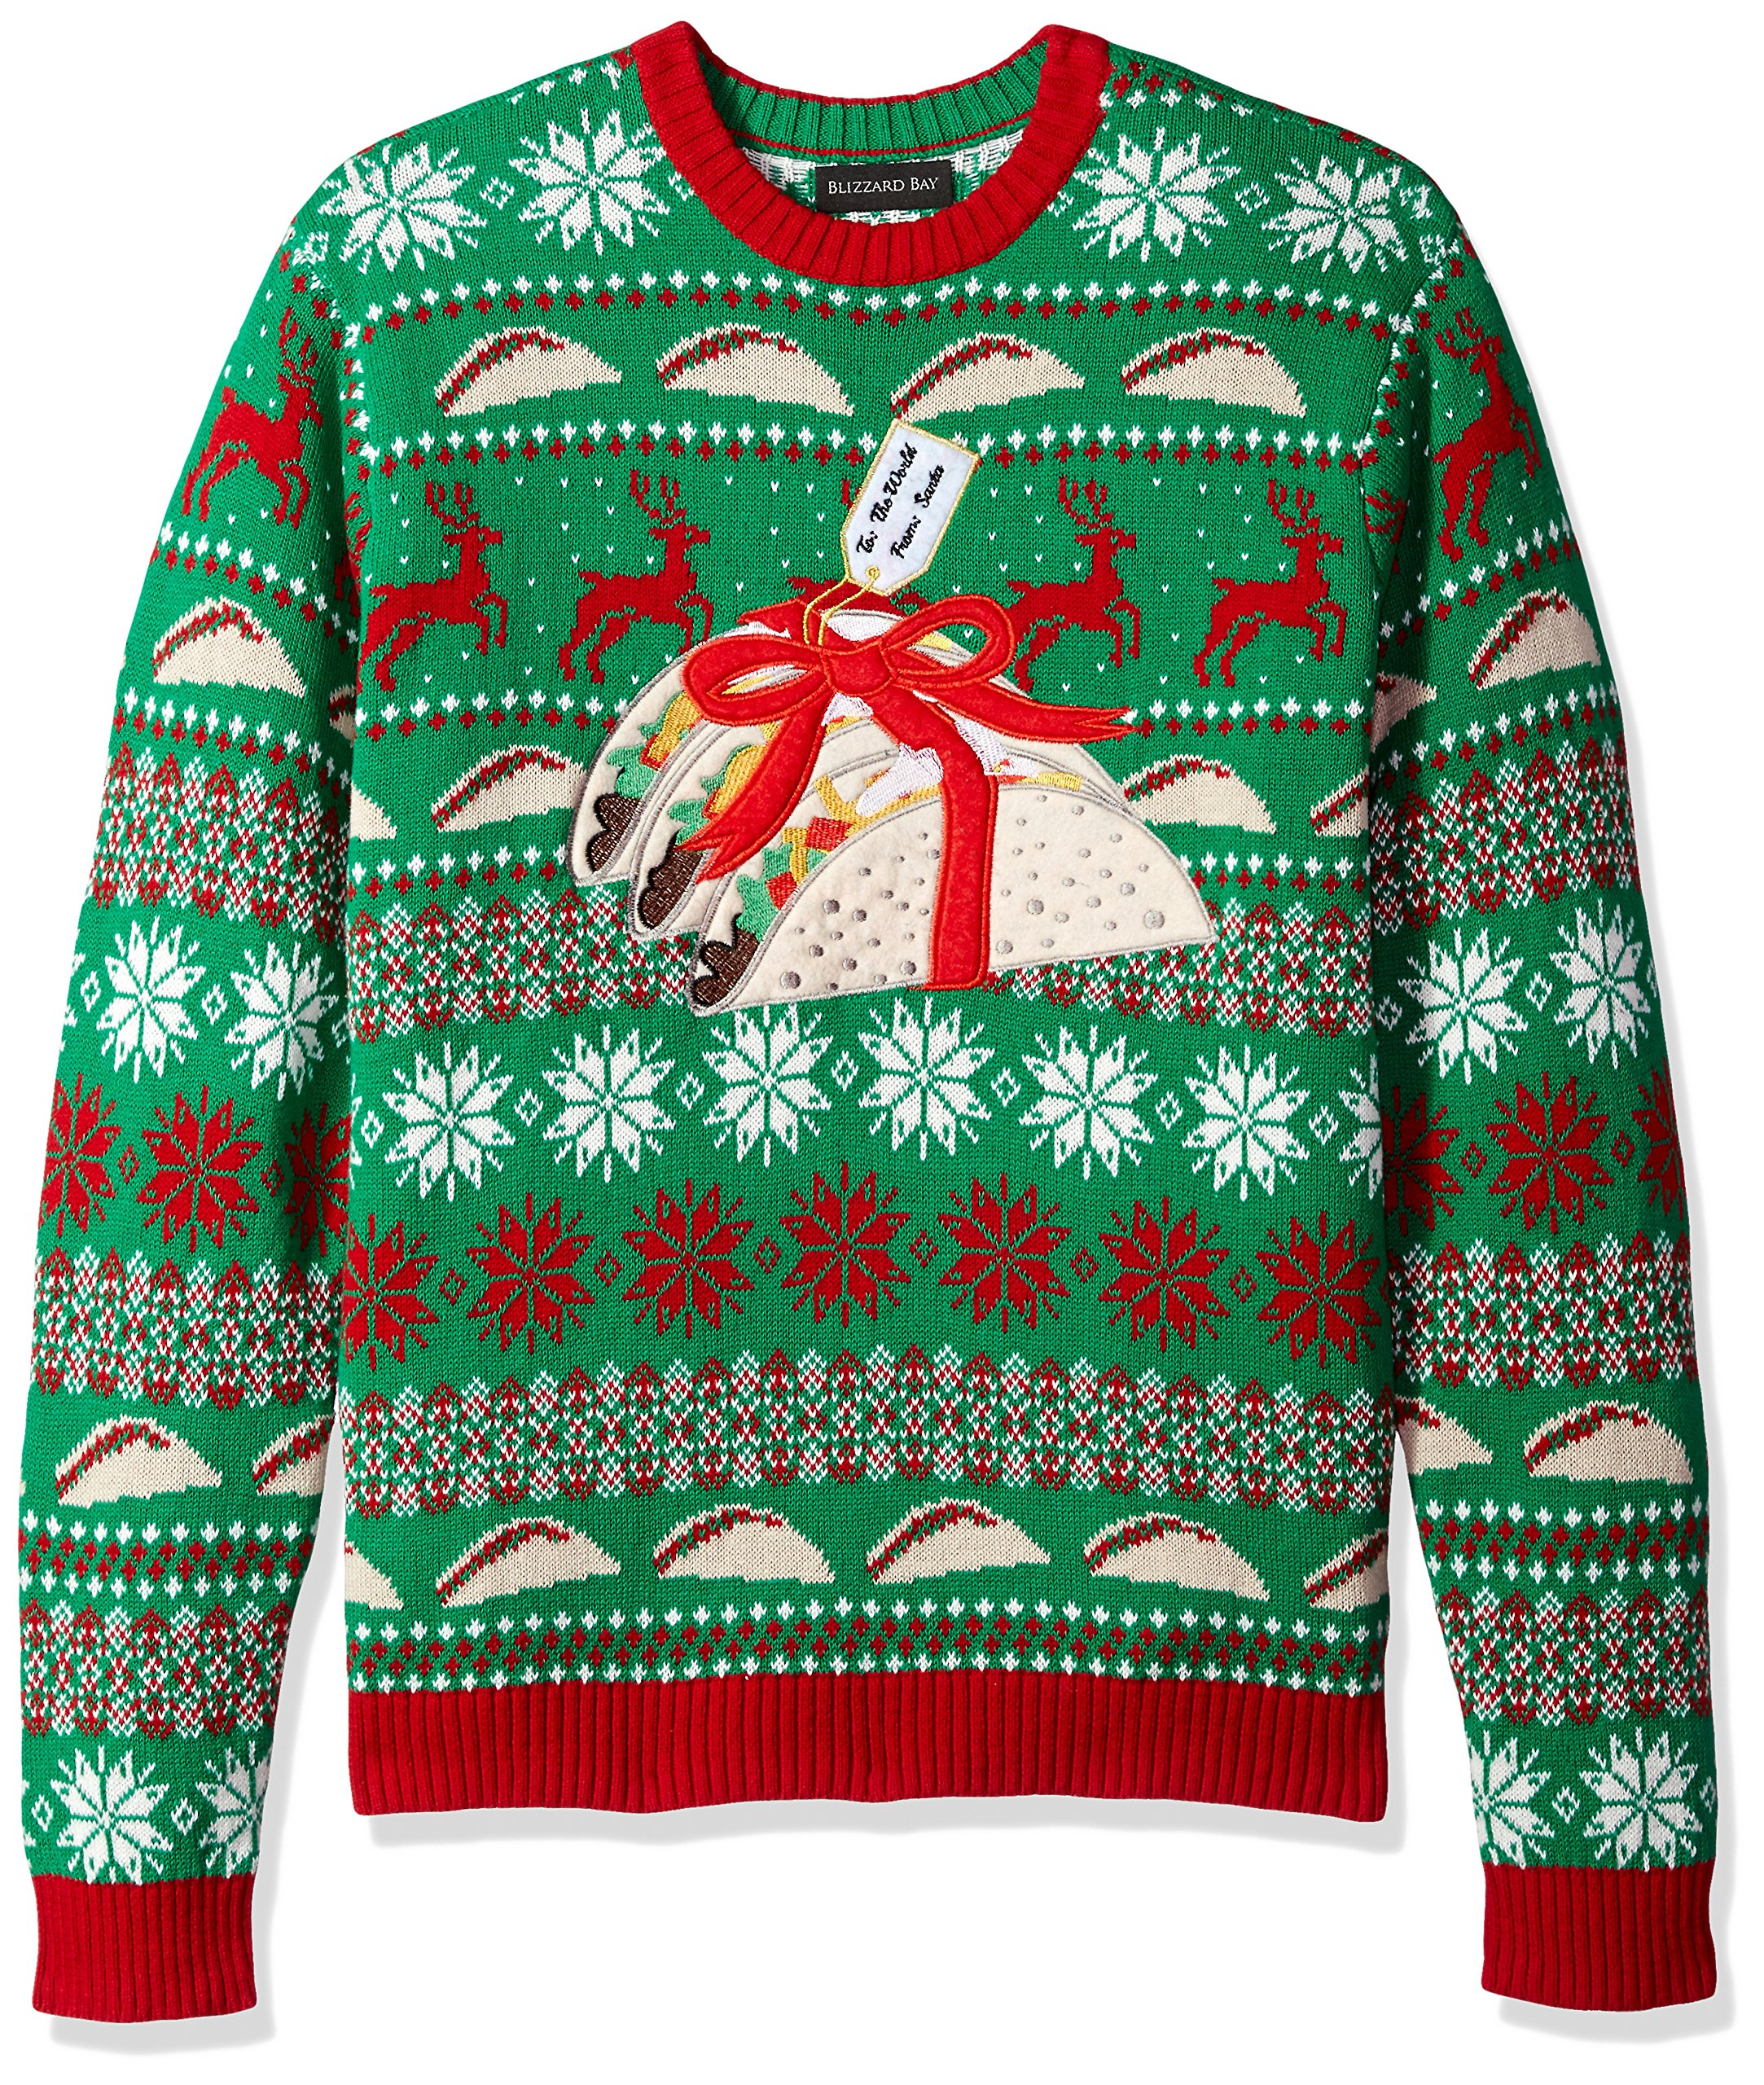 Blizzard Bay Men's Ugly Christmas Sweater Food, Green, Medium by Blizzard Bay